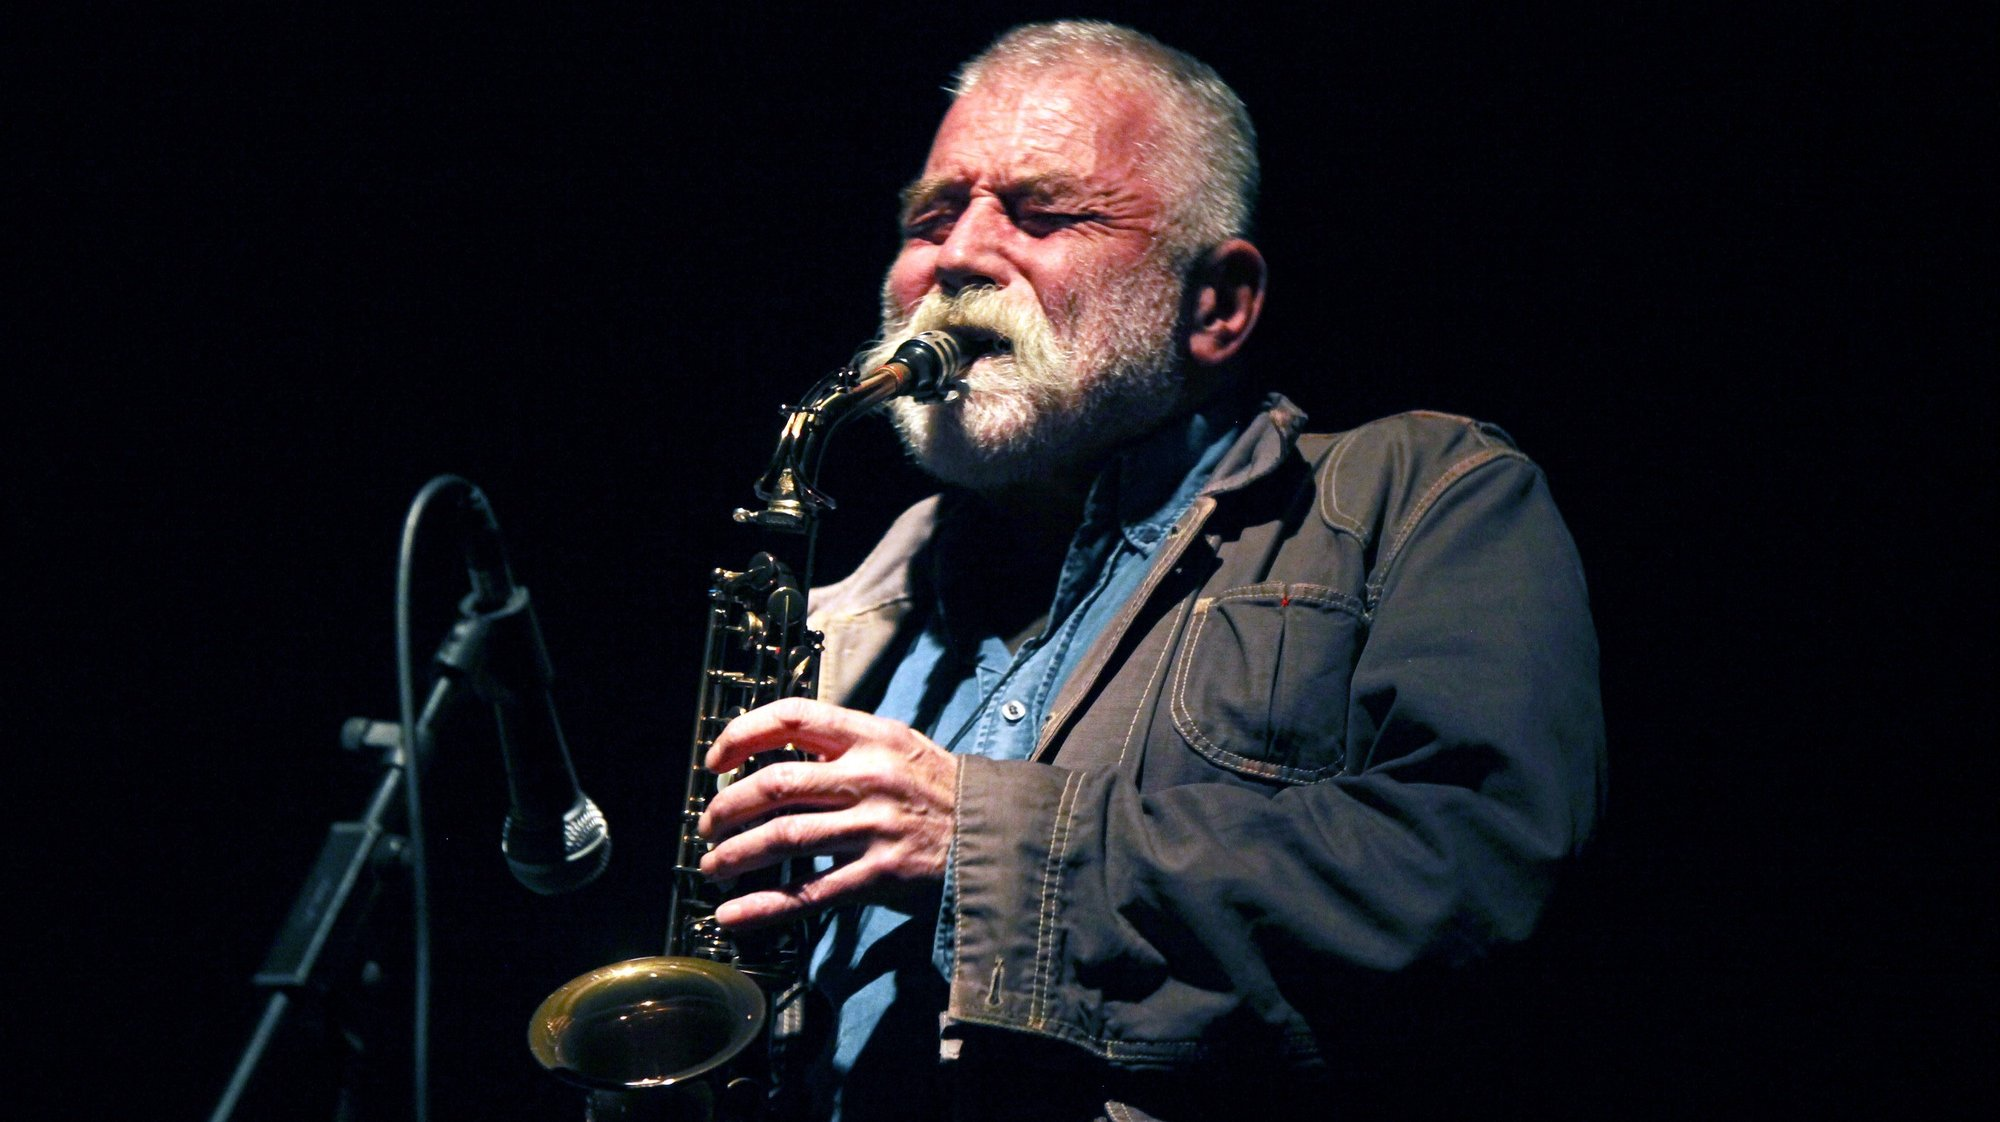 German artist and free jazz saxophonist Peter Brötzmann performs on stage during his concert at Passos Manuel, in Porto, Portugal,  late 14th October 2012. ESTELA SILVA / LUSA